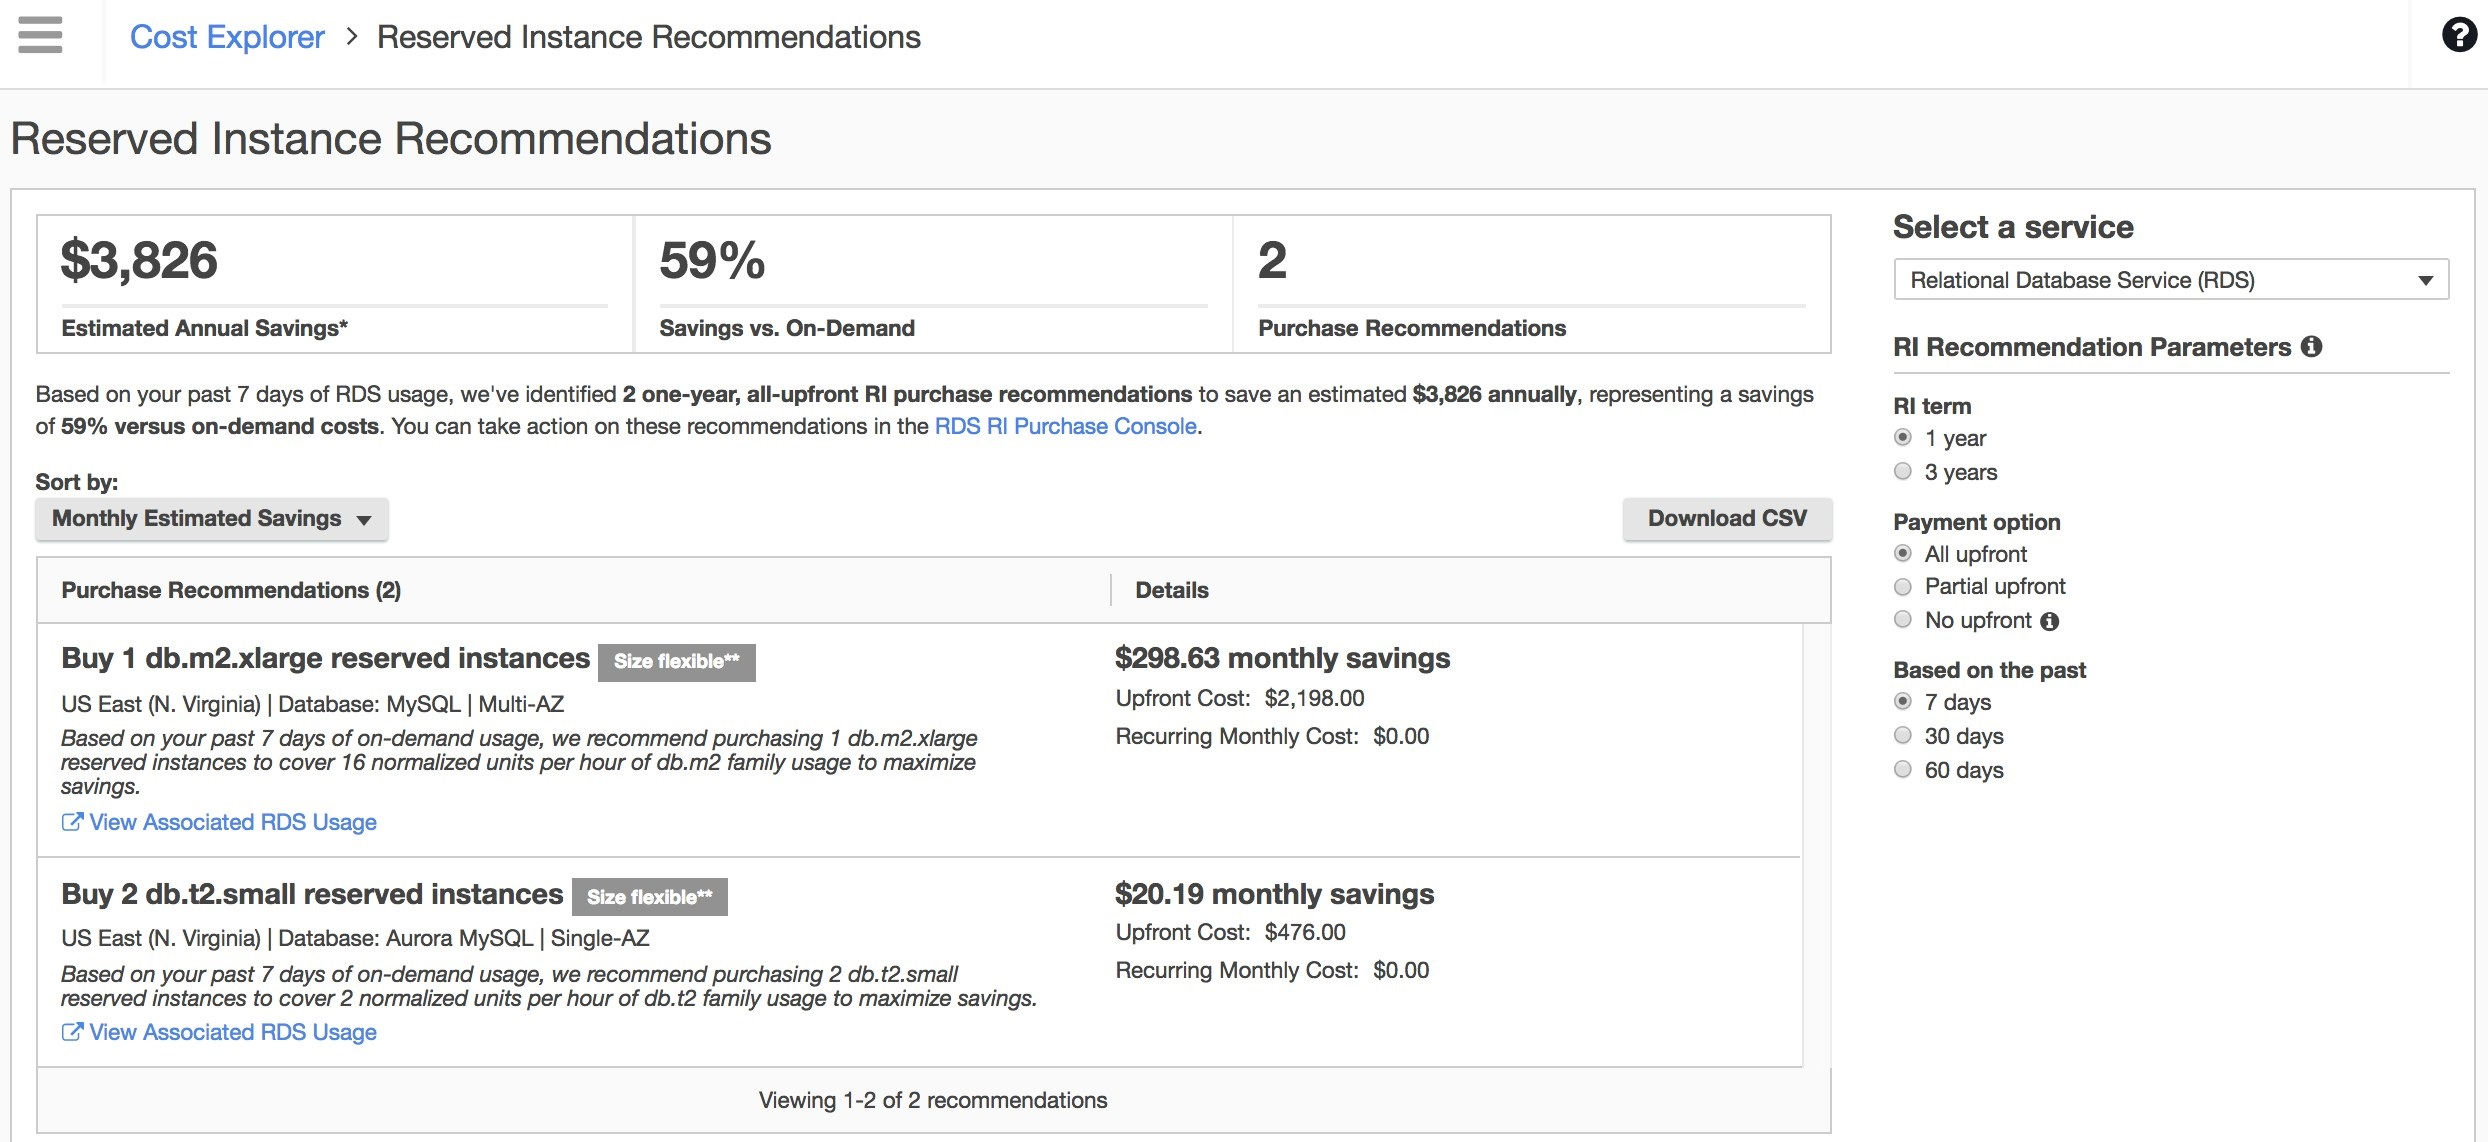 Screenshot of the RDS Reserved Instance Recommendations in Cost Explorer